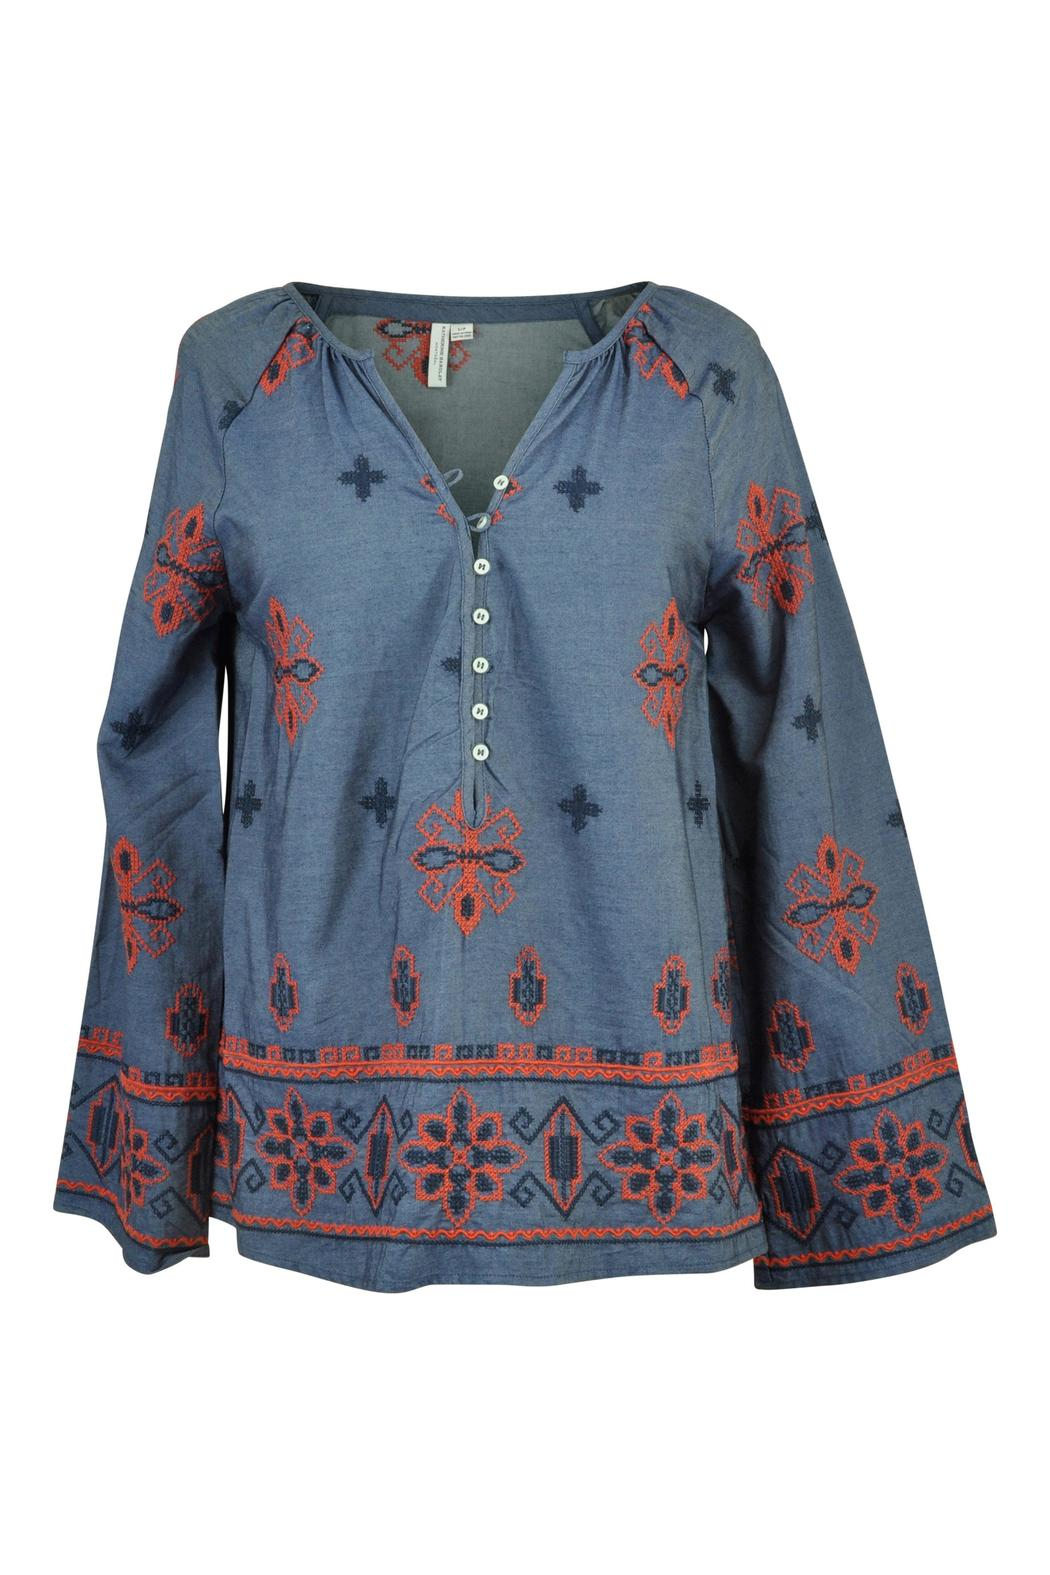 Katherine Barclay Chambray Peasant Top - Front Cropped Image